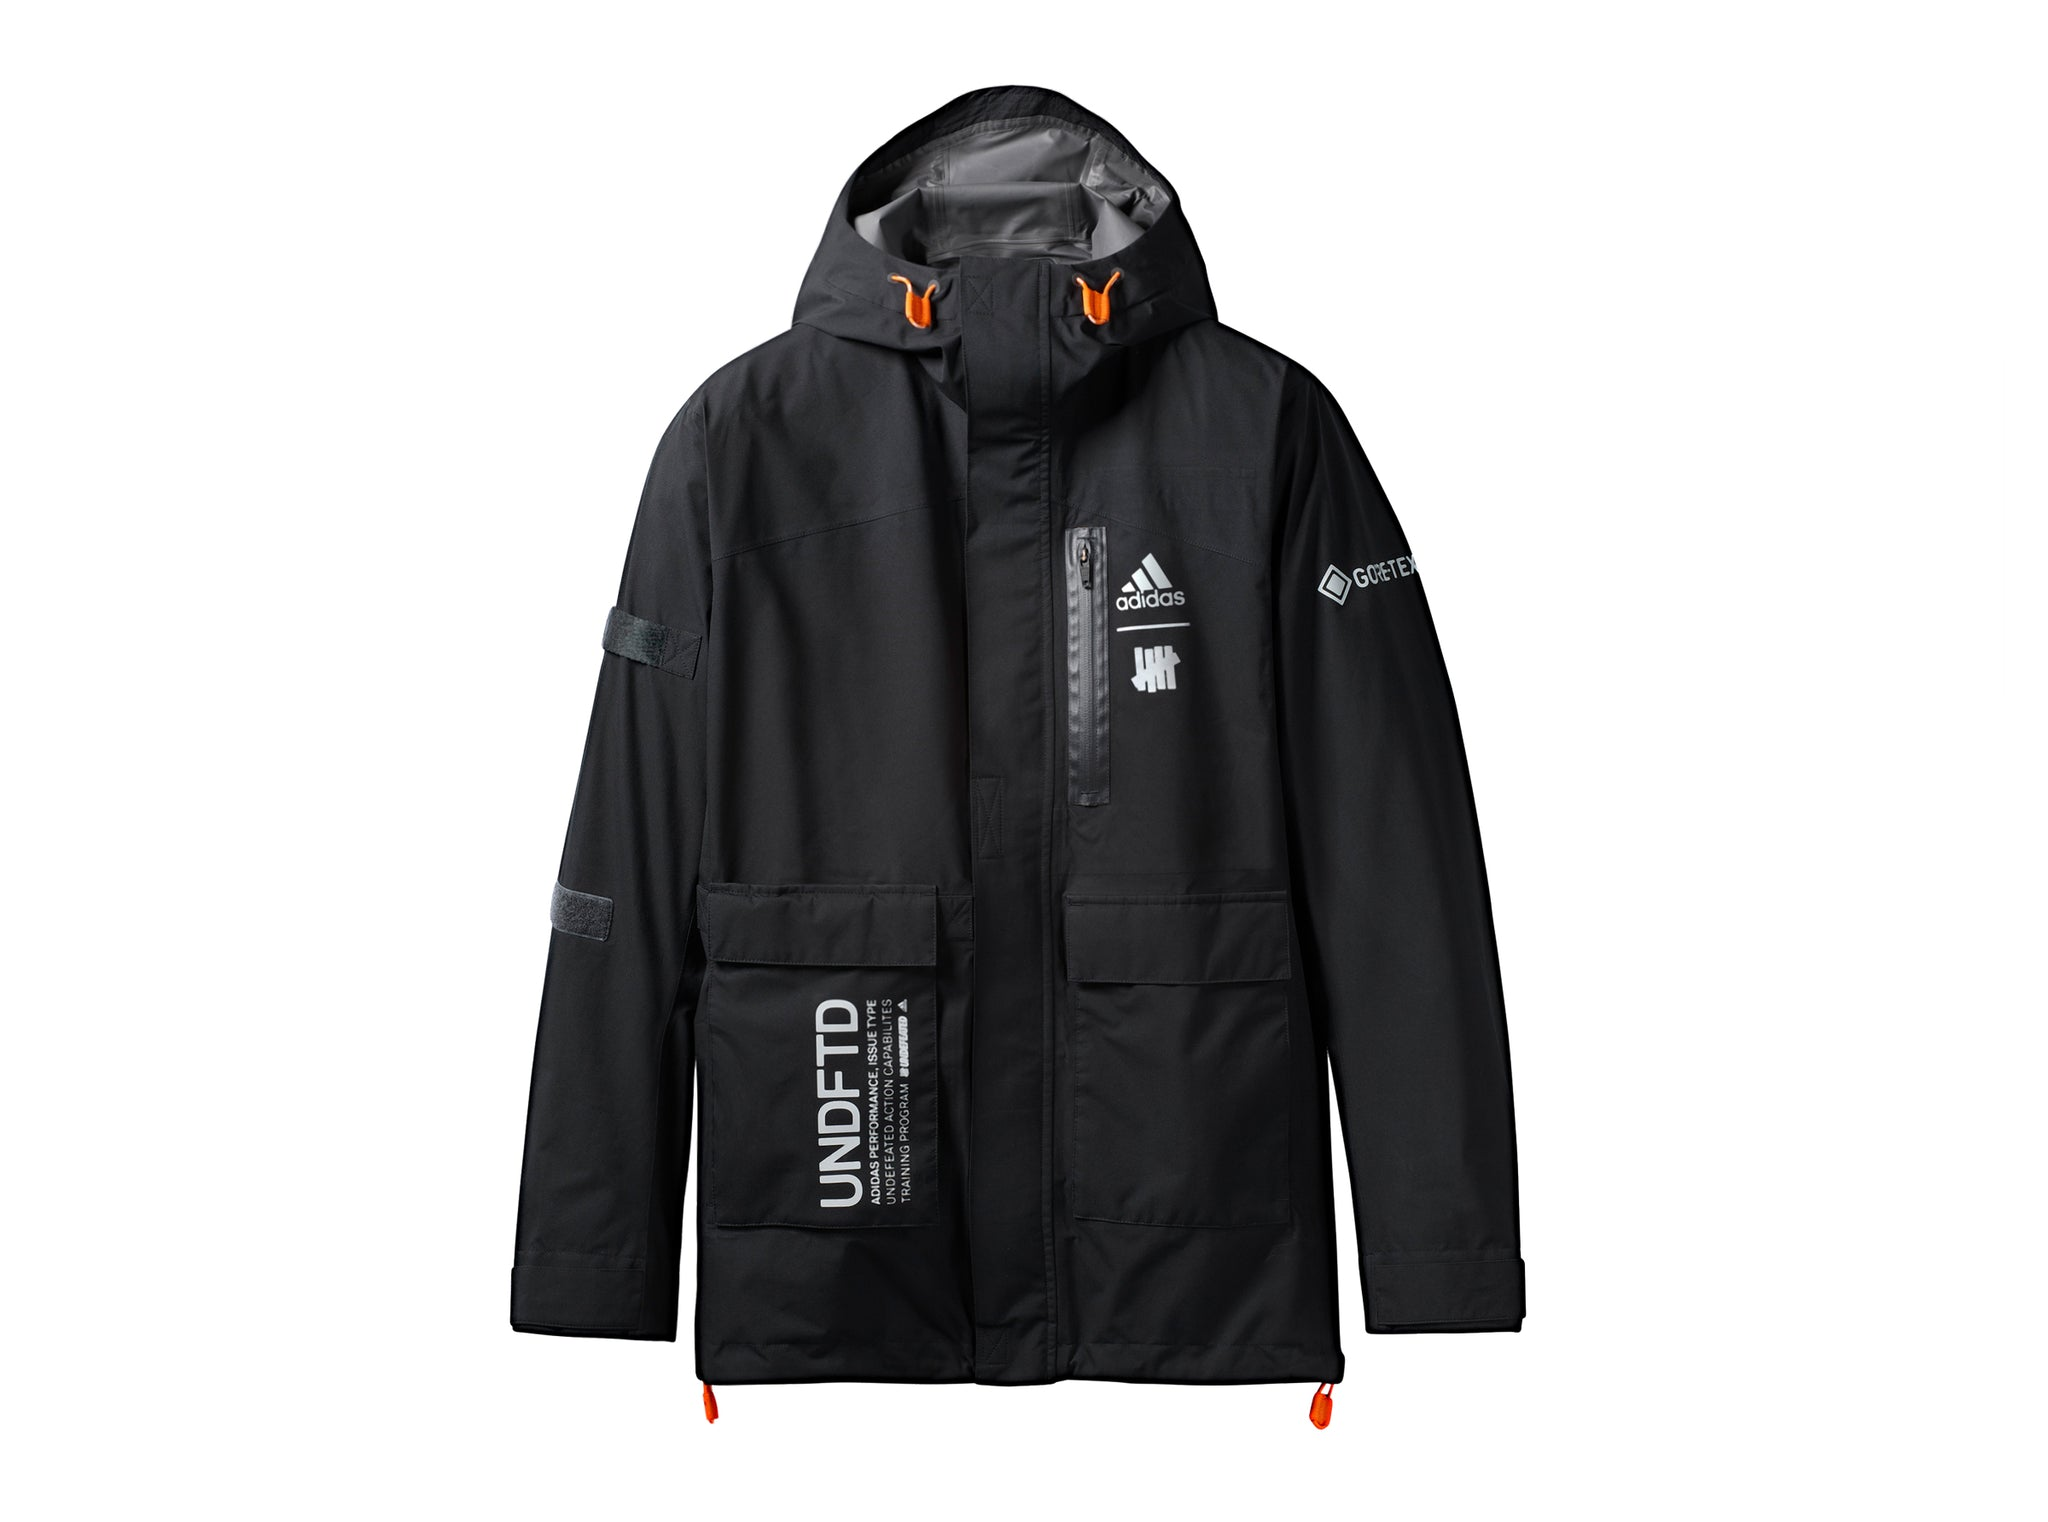 ADIDAS X UNDEFEATED GTX JKT - BLACK